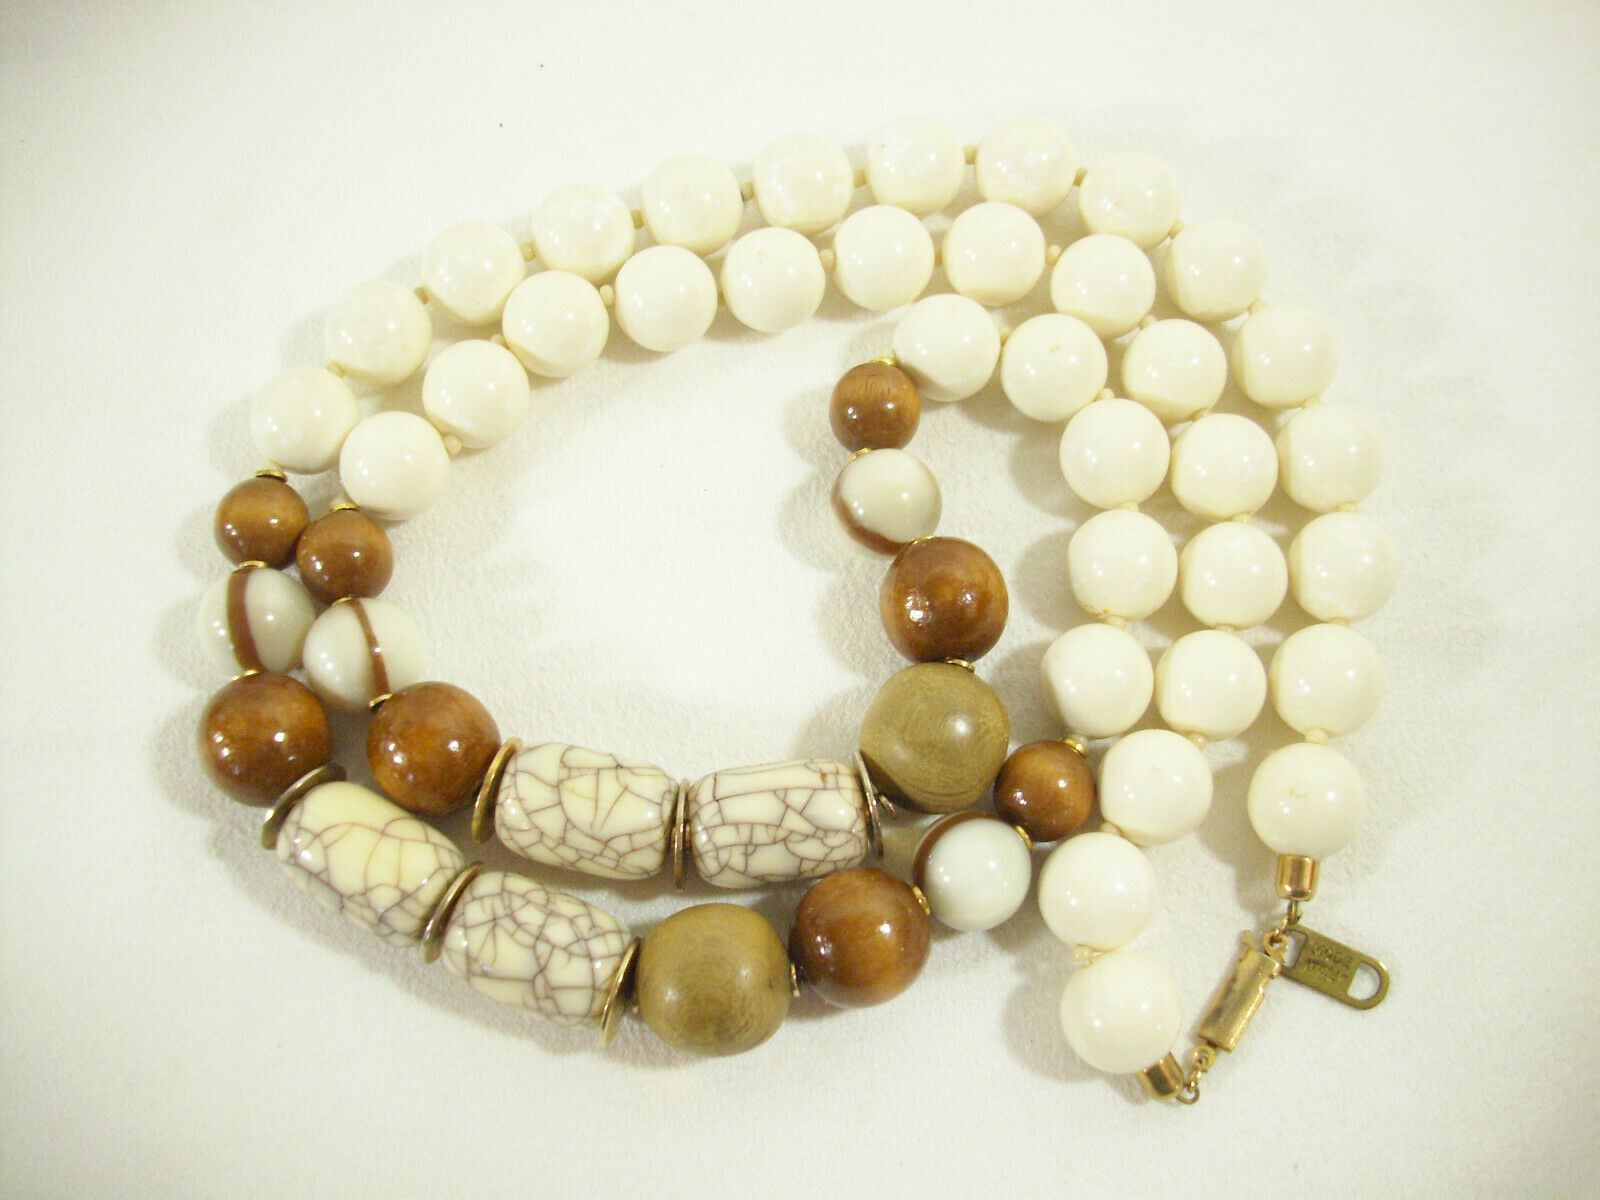 White Brown Tan Beads Necklace Wood Marbled Strand String Italy Vintage Estate